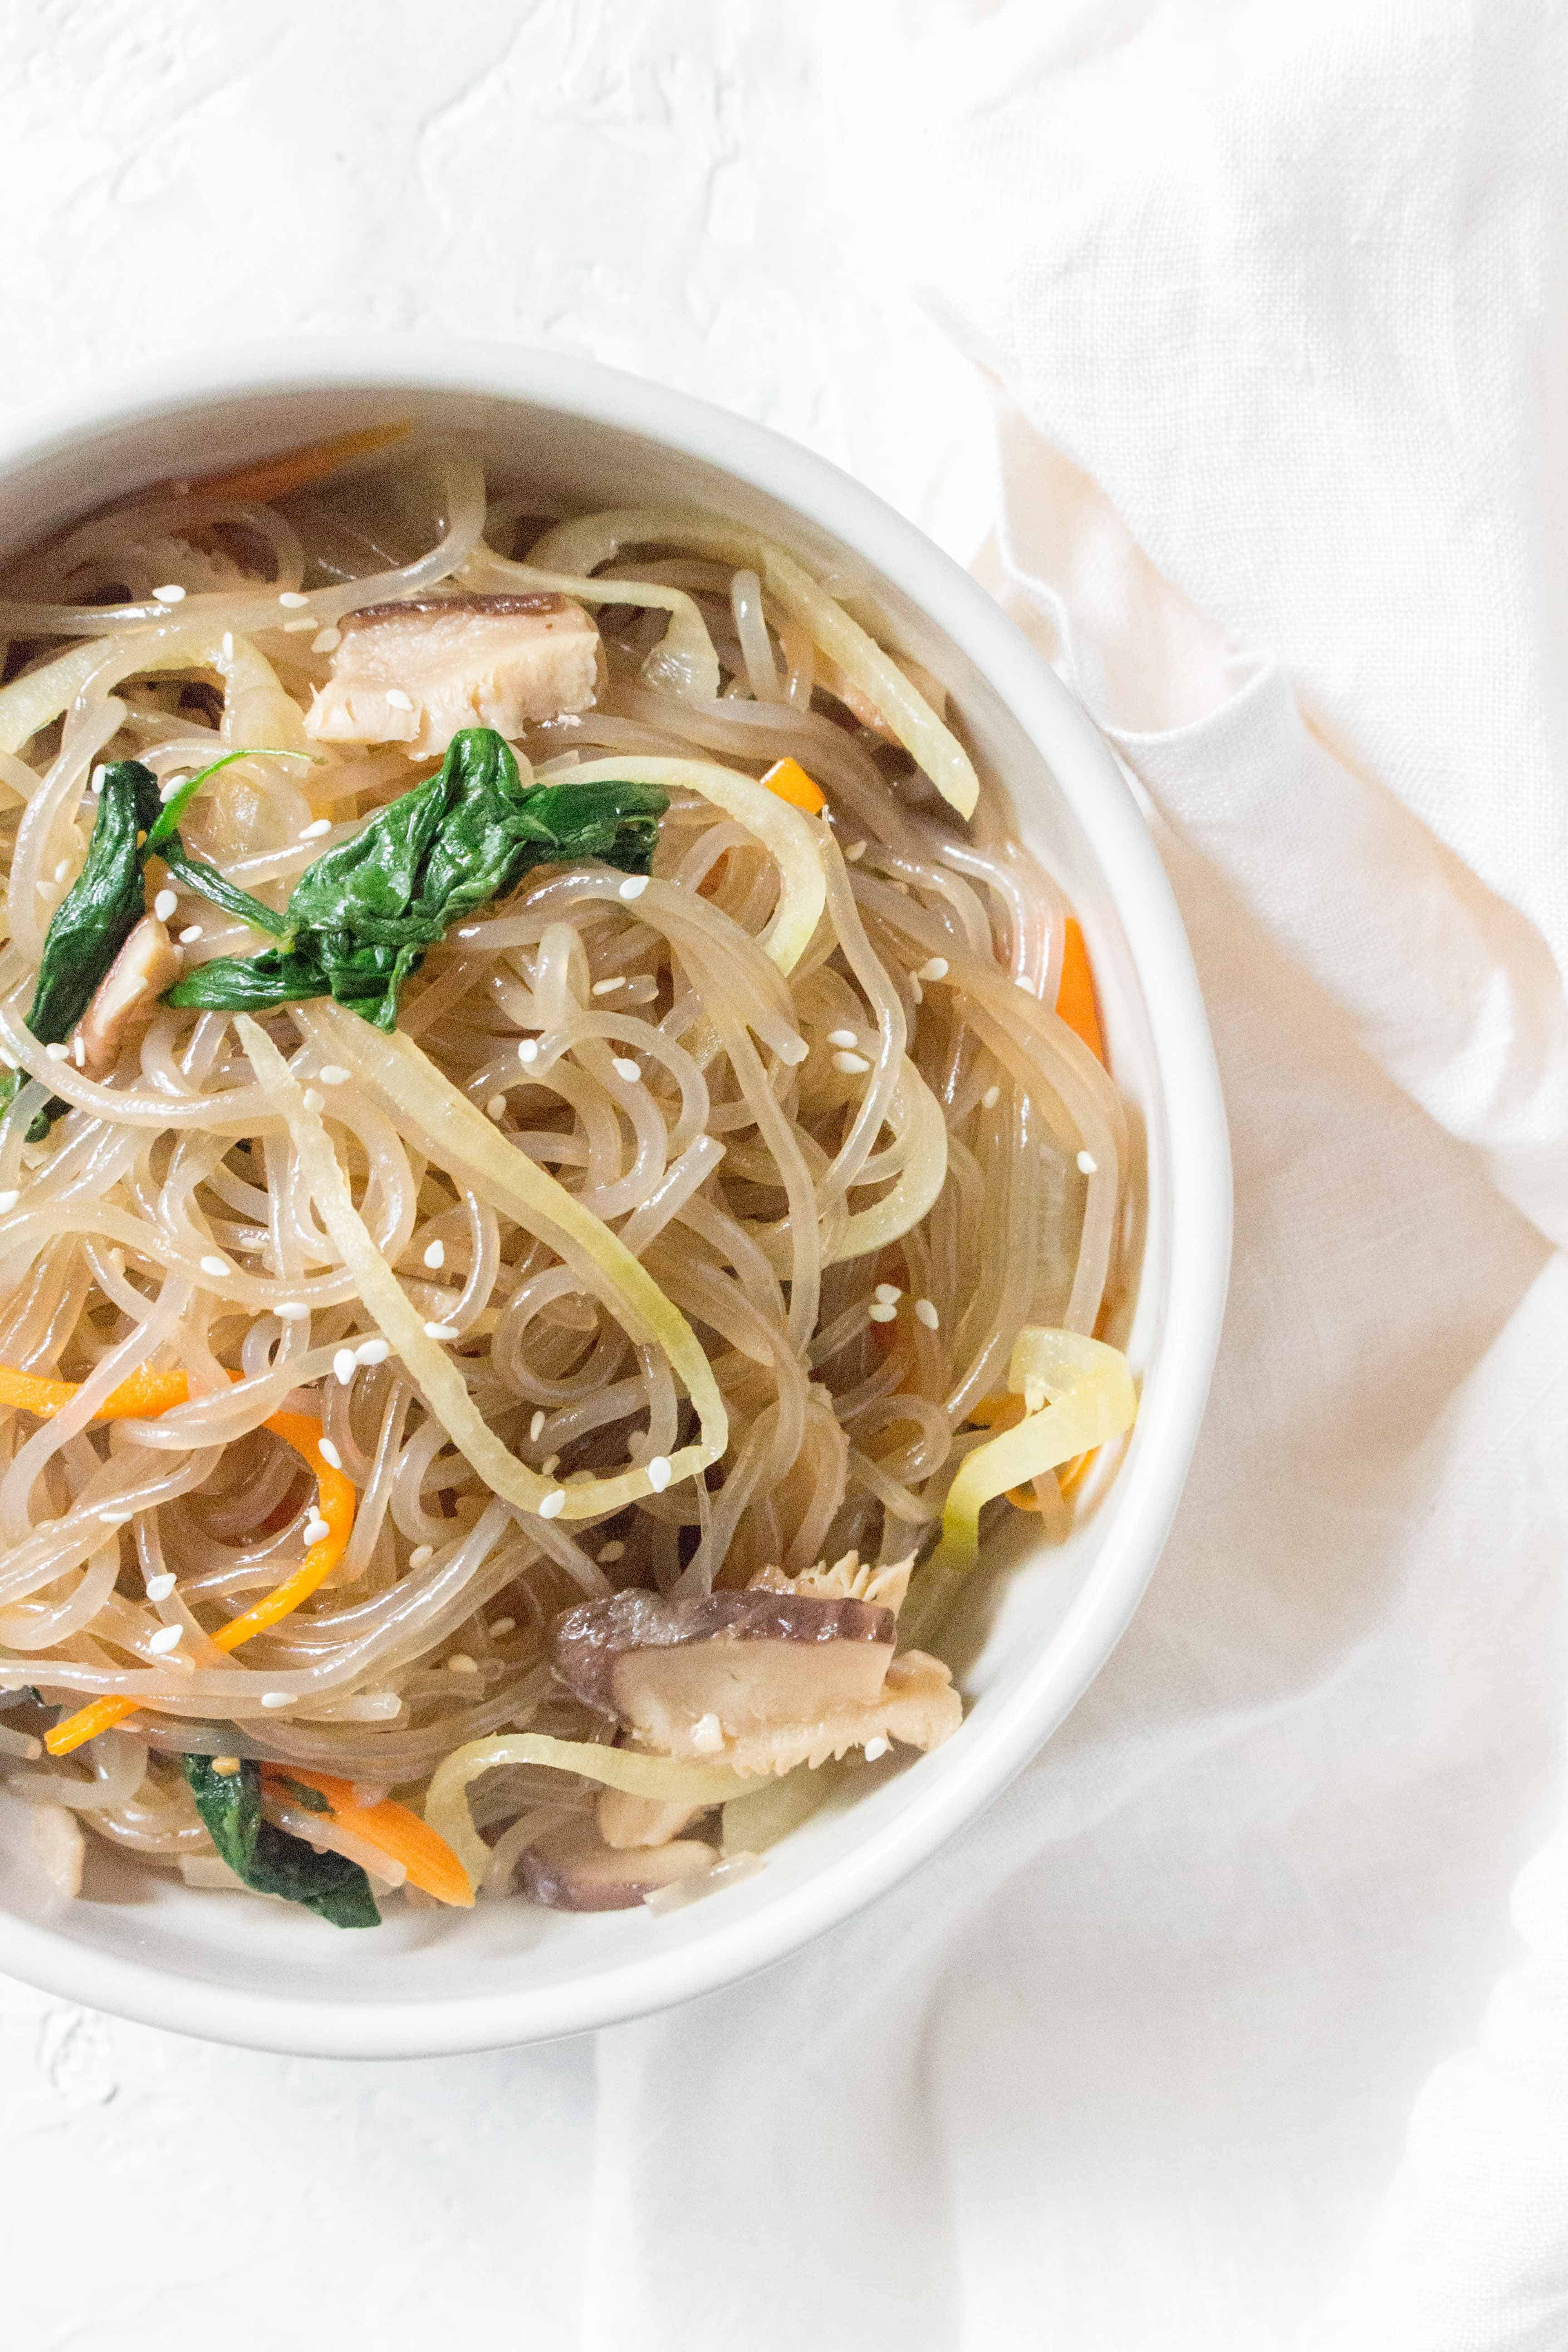 Ever wondered how to make Japchae at home? Here's a super quick and easy method! Japchae is the perfect dish for a potluck or as a meal prep!